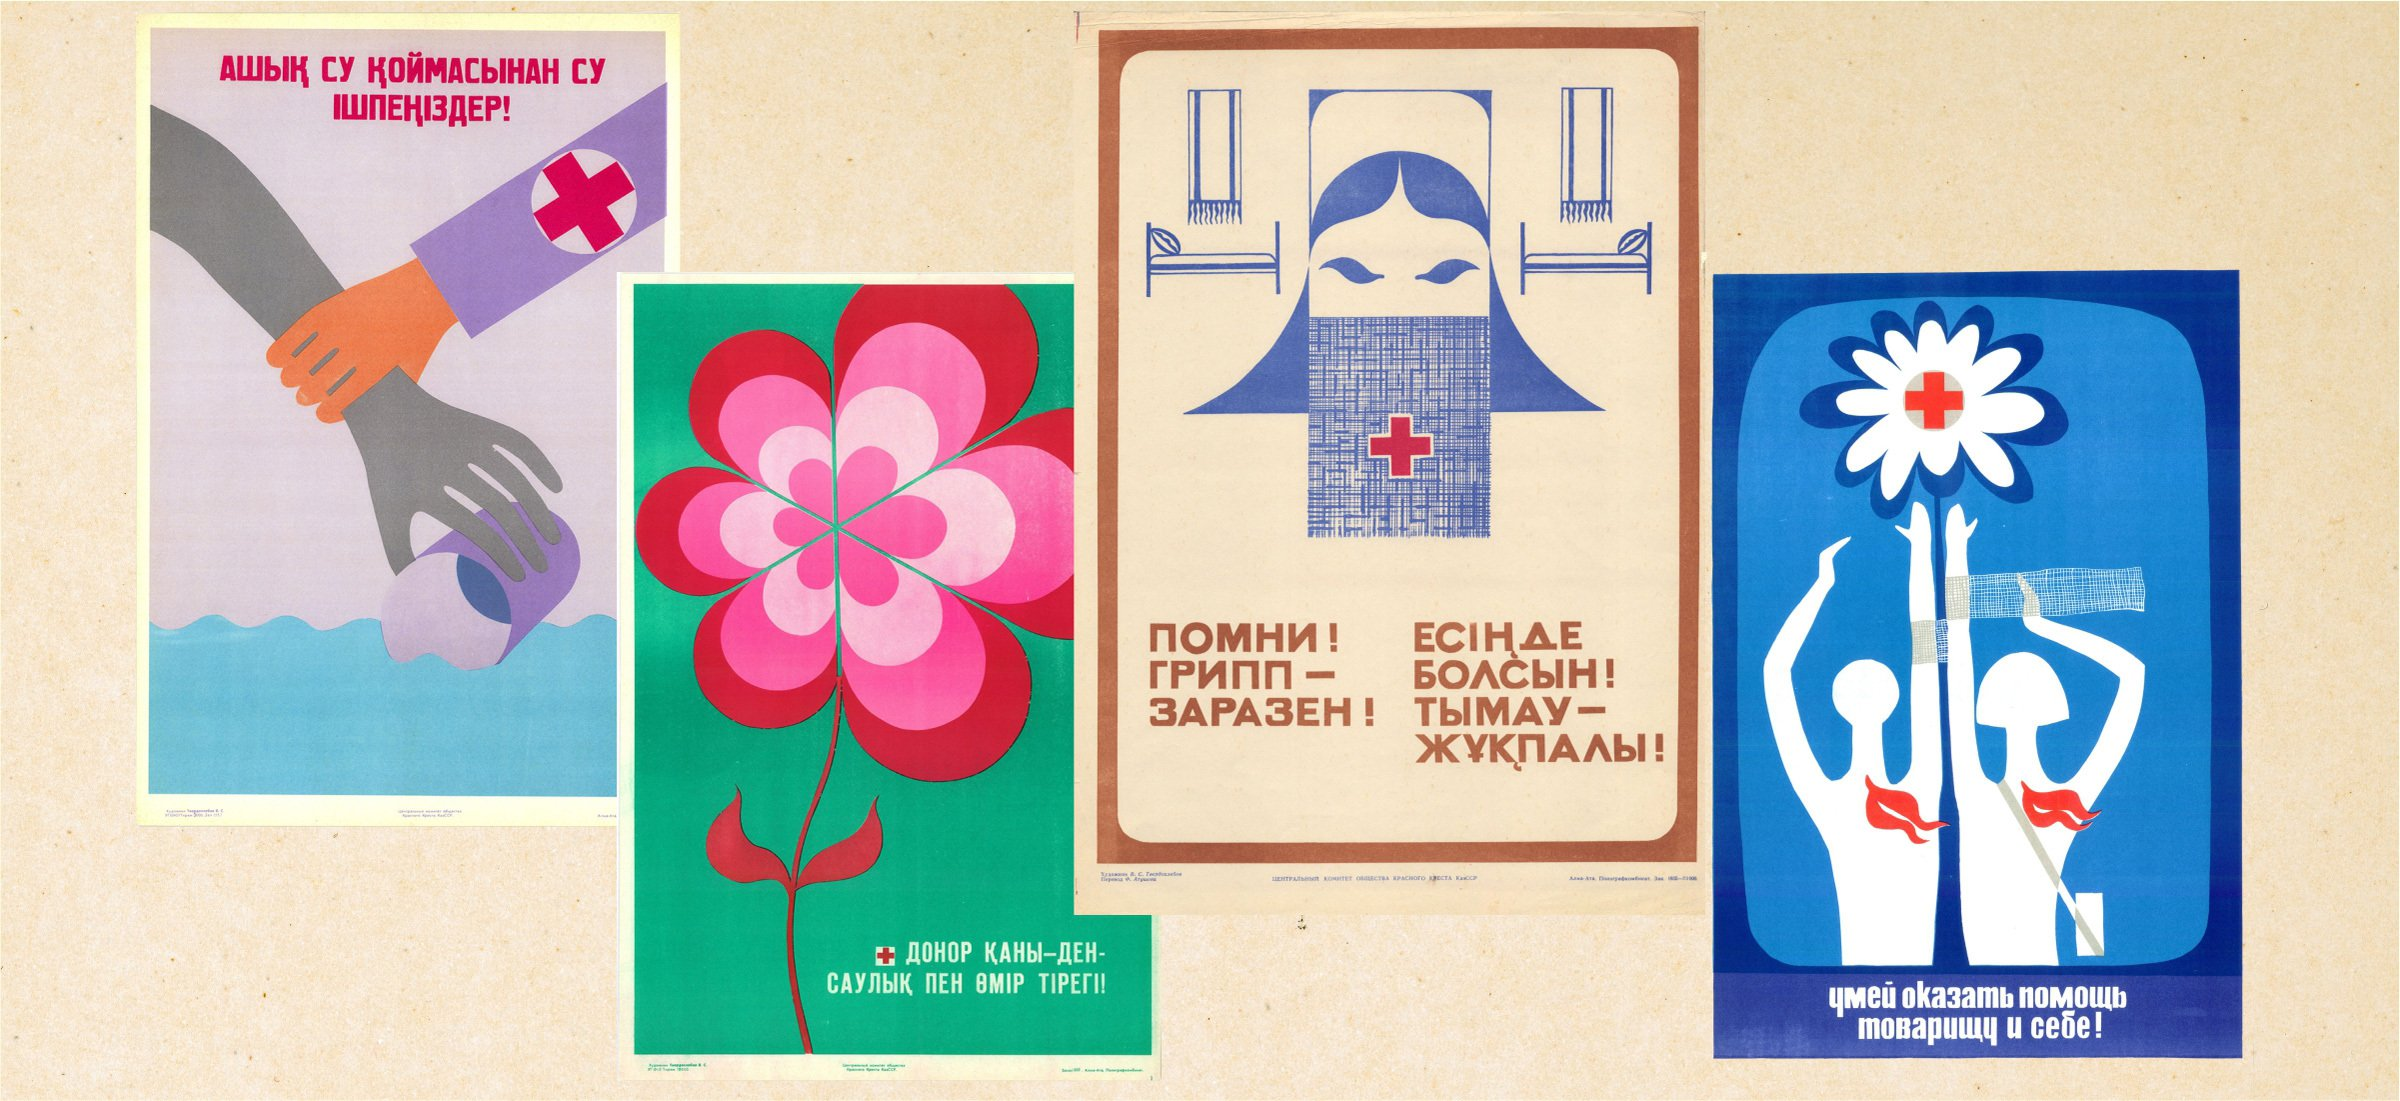 Mask media: Soviet Kazakh health posters from the 1970s